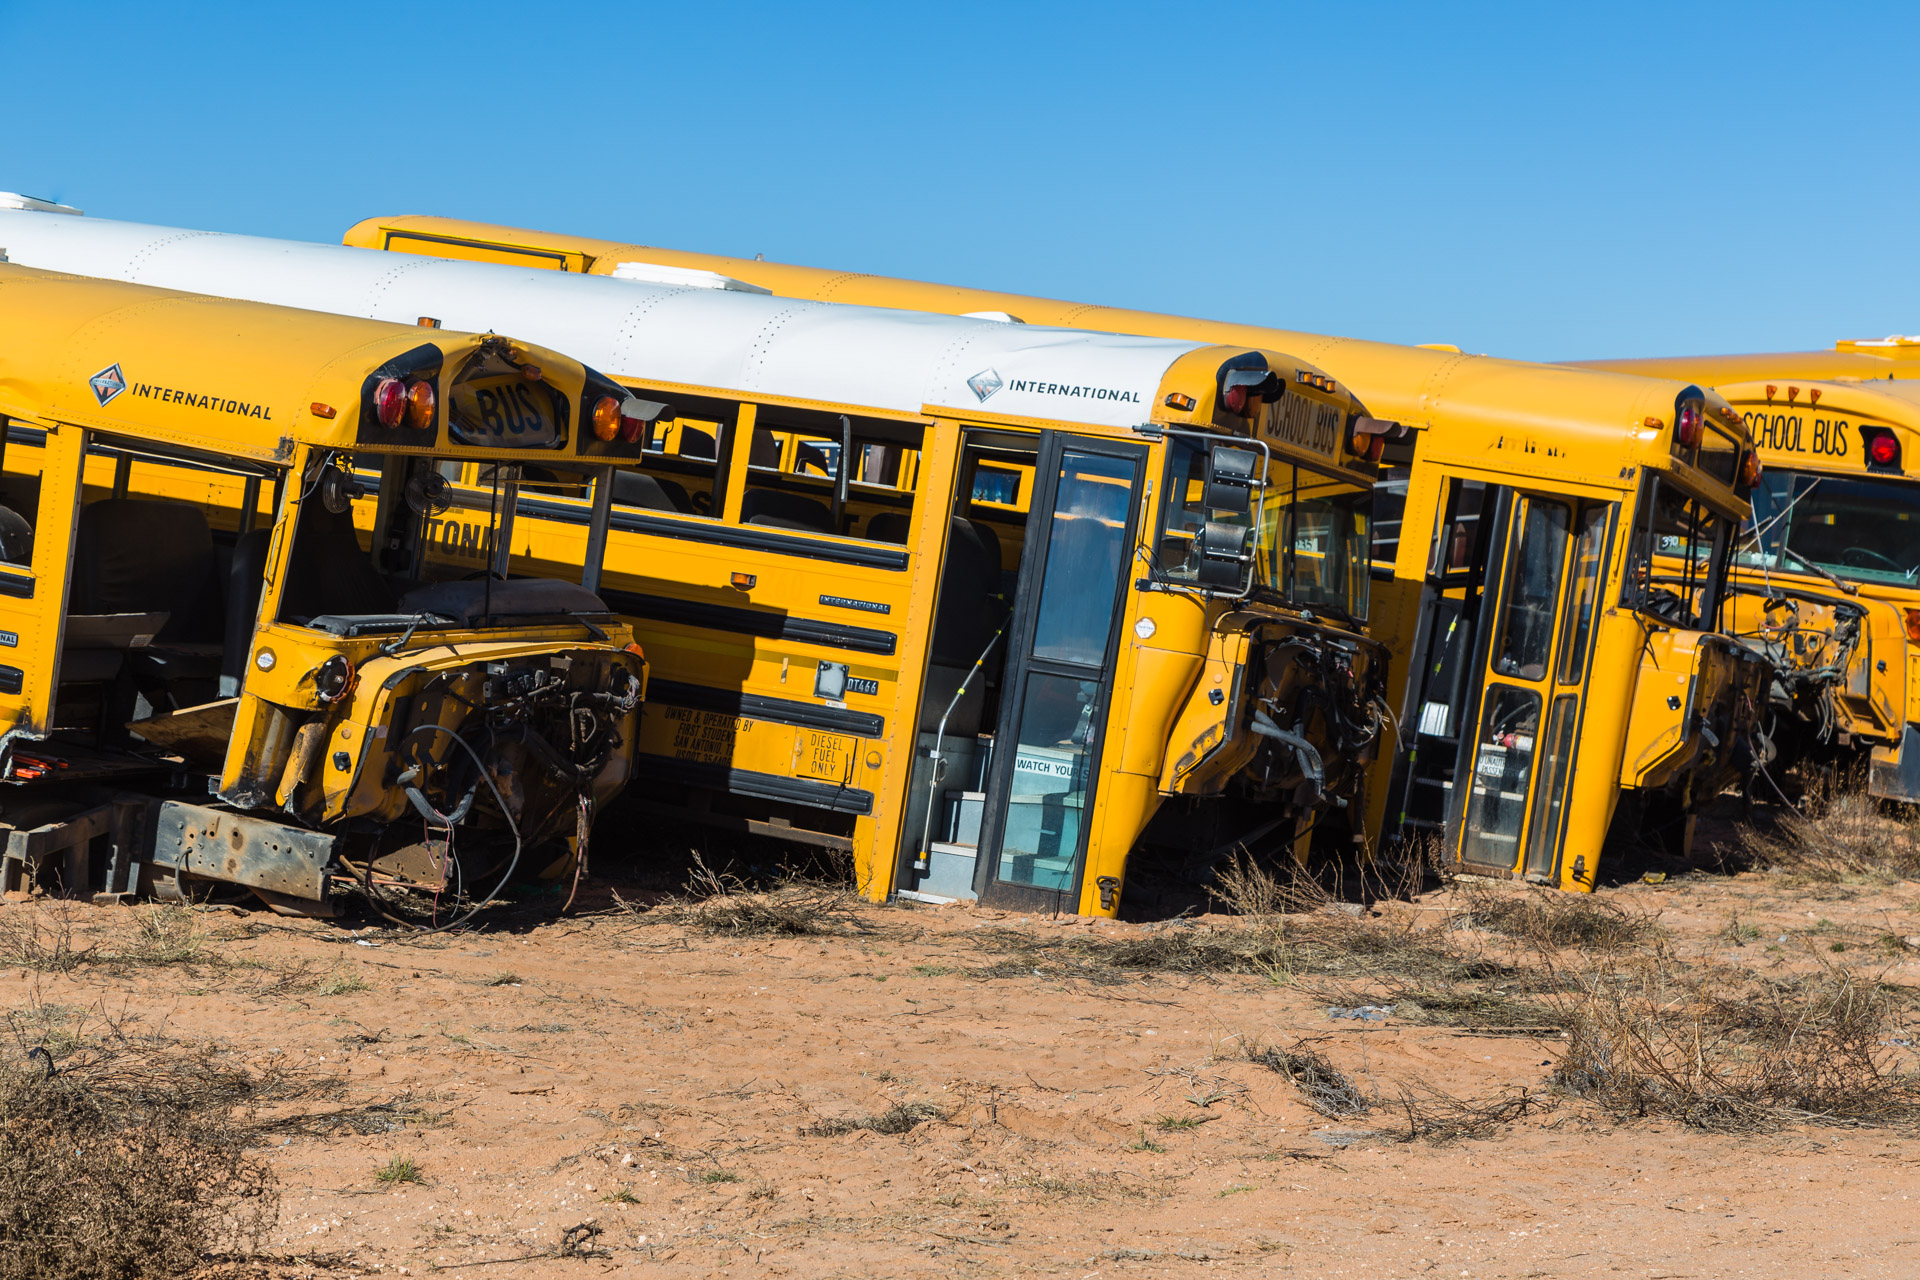 School Bus Graveyard (side bus close)